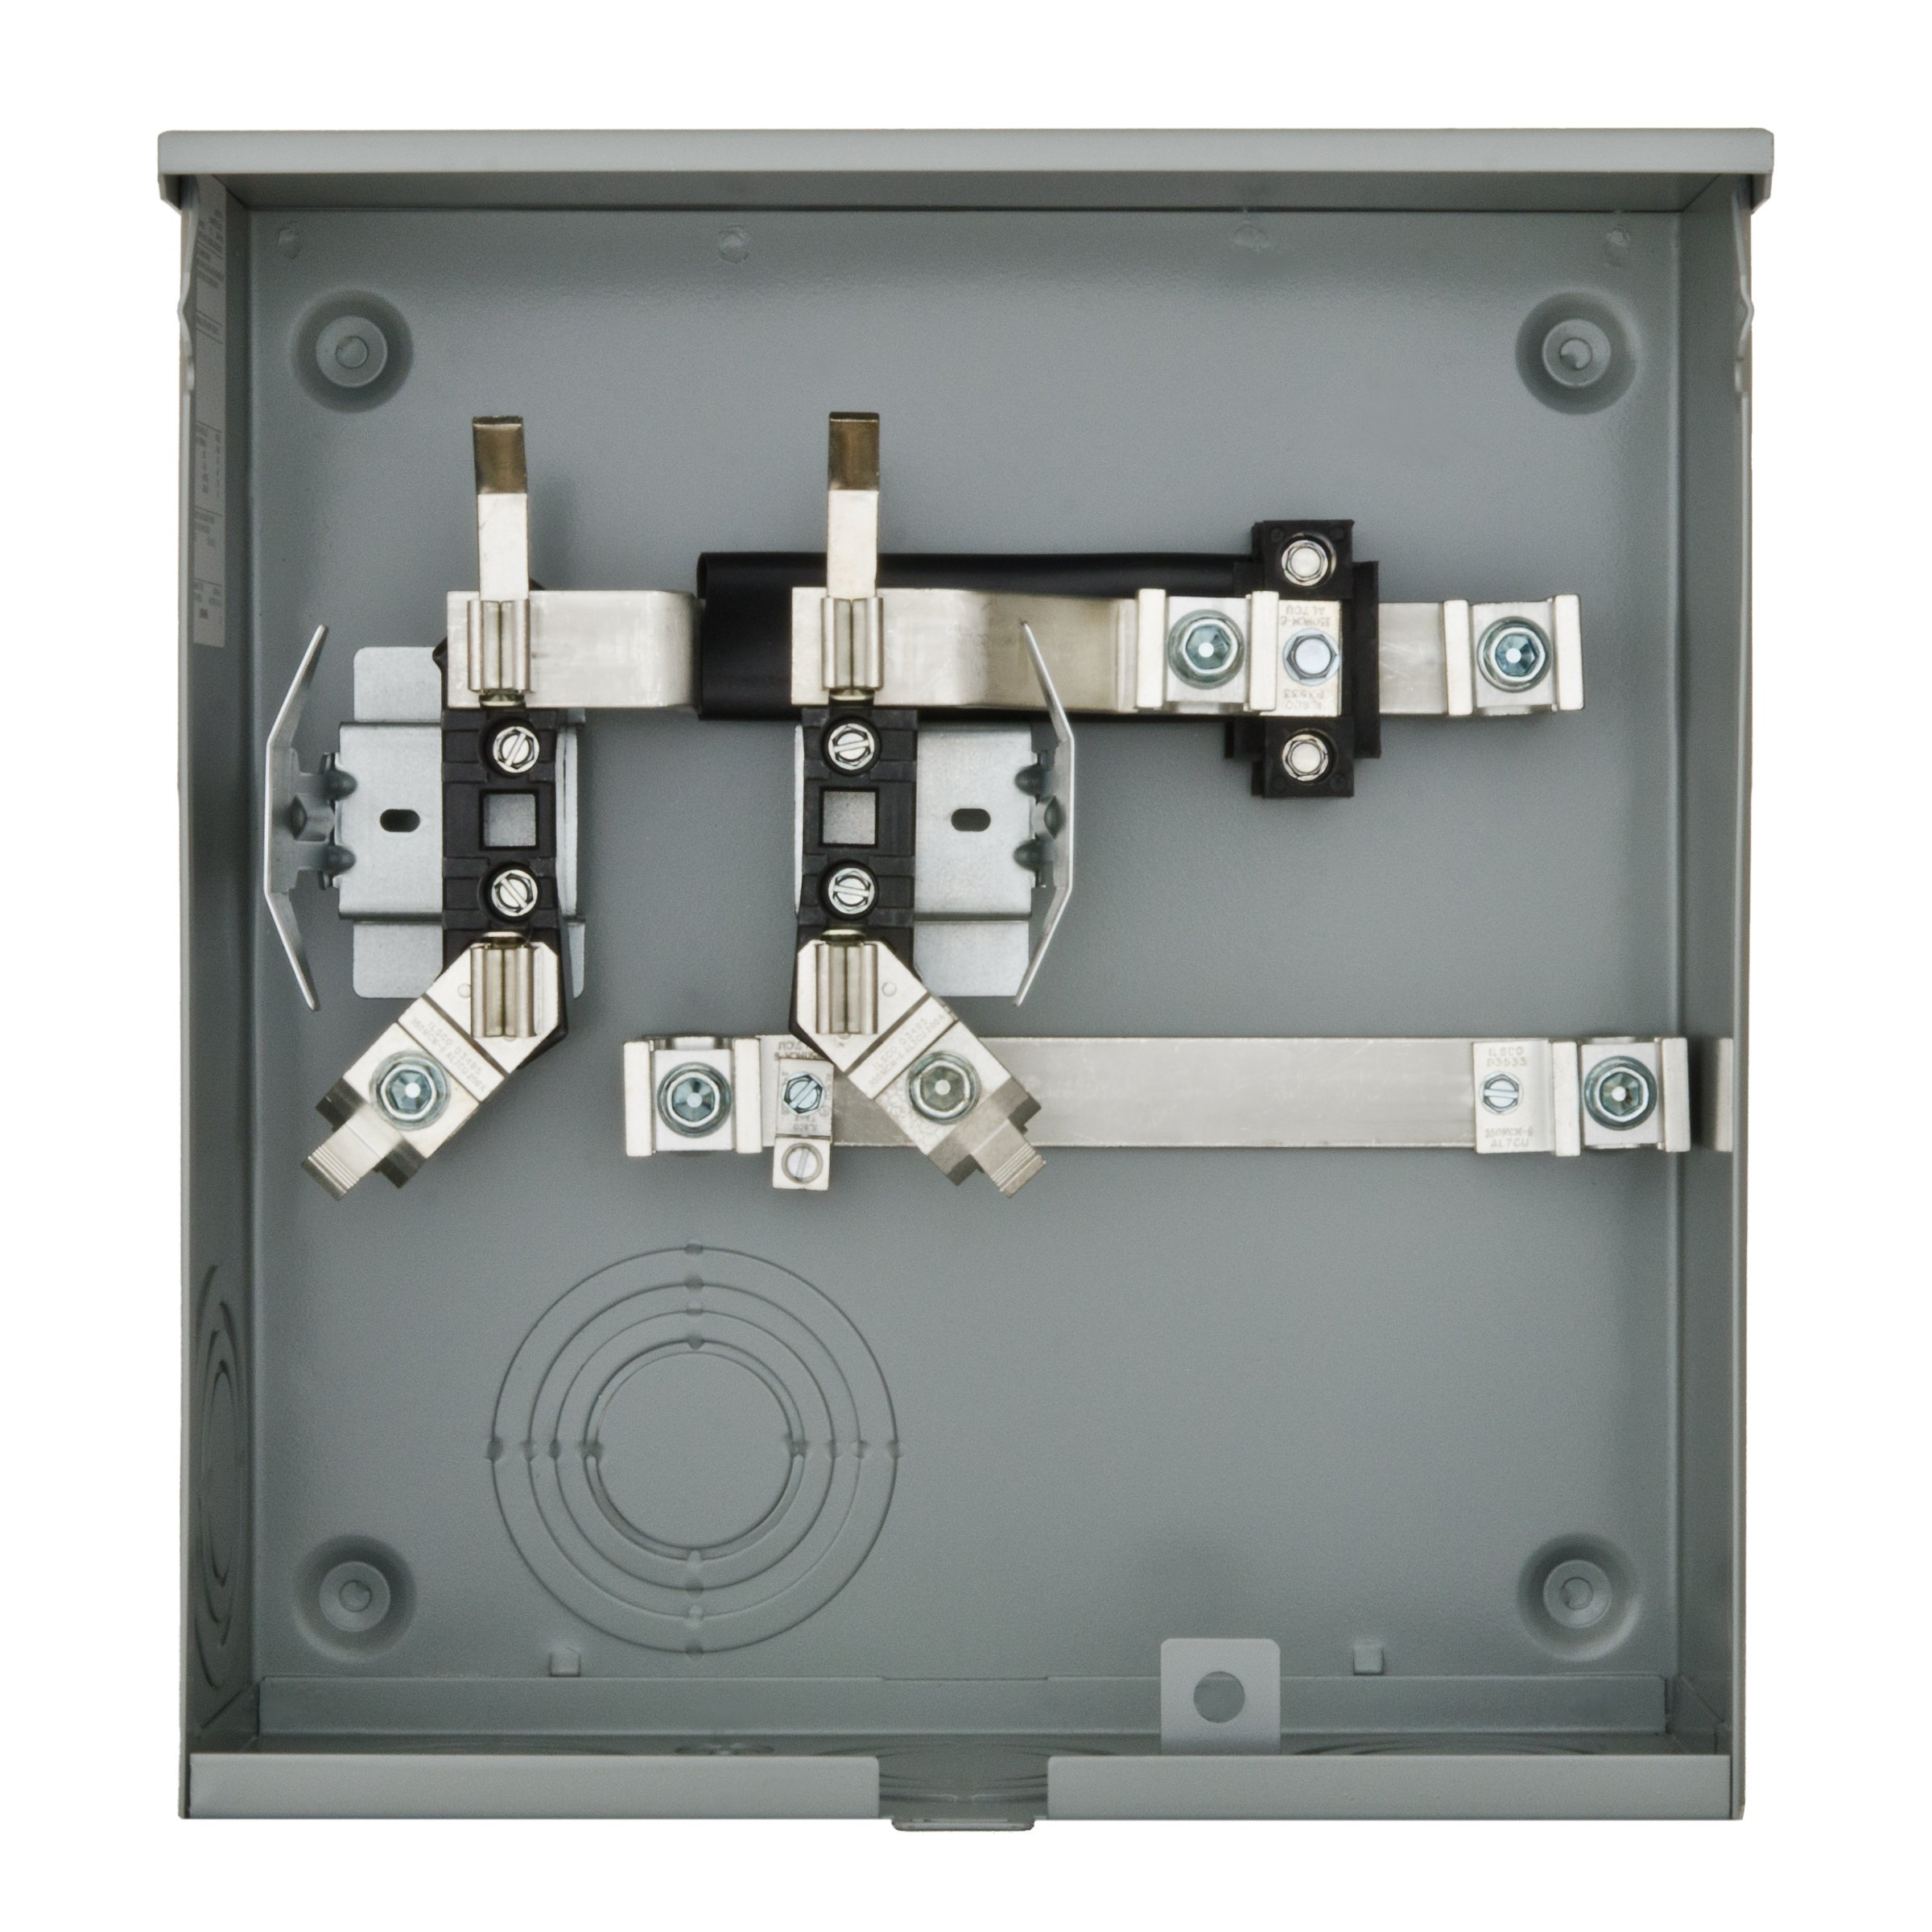 Siemens SUAS817-PPGP 200-Amp, 4 Jaw, Ringless Cover, Horn Bypass, Underground Feed, Side Wired, 7/8 Barrell Lock, Meter Socket